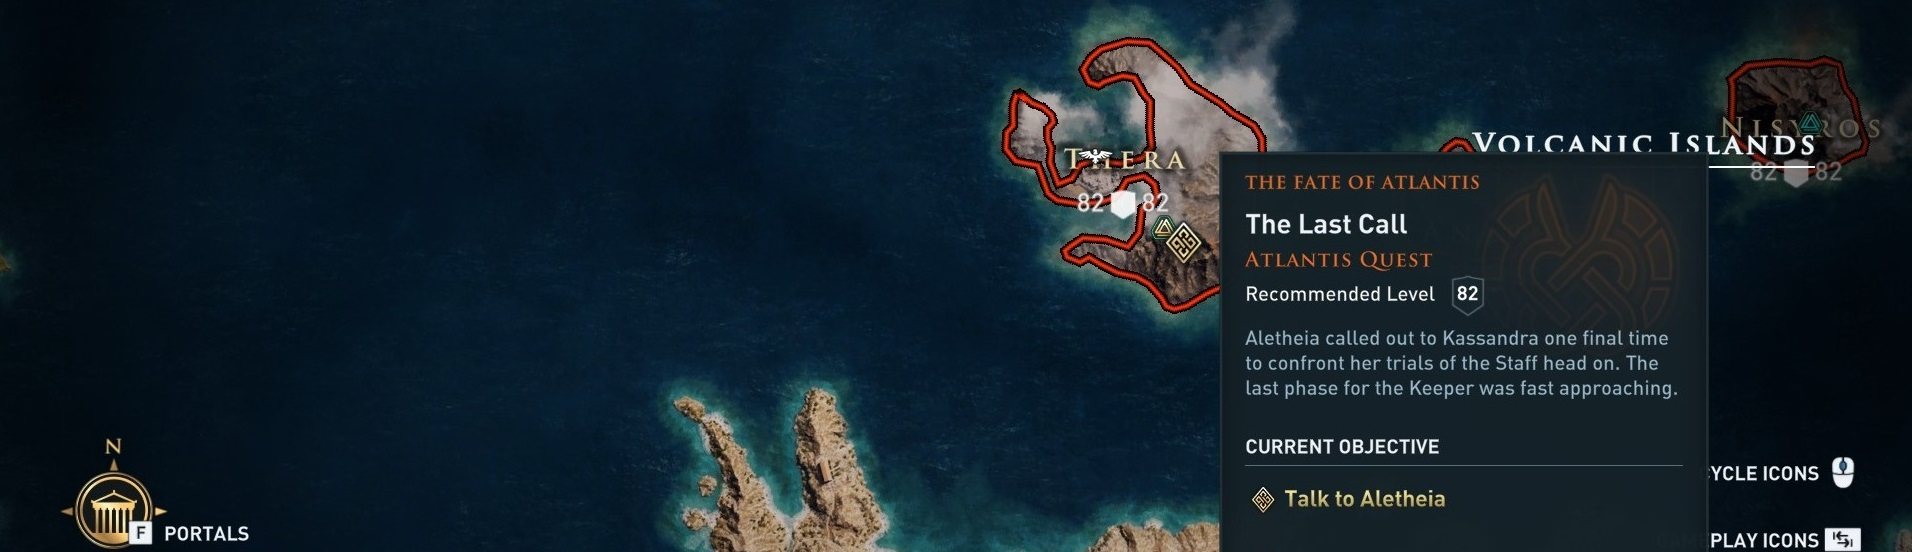 Location of the quest on the in-game world map